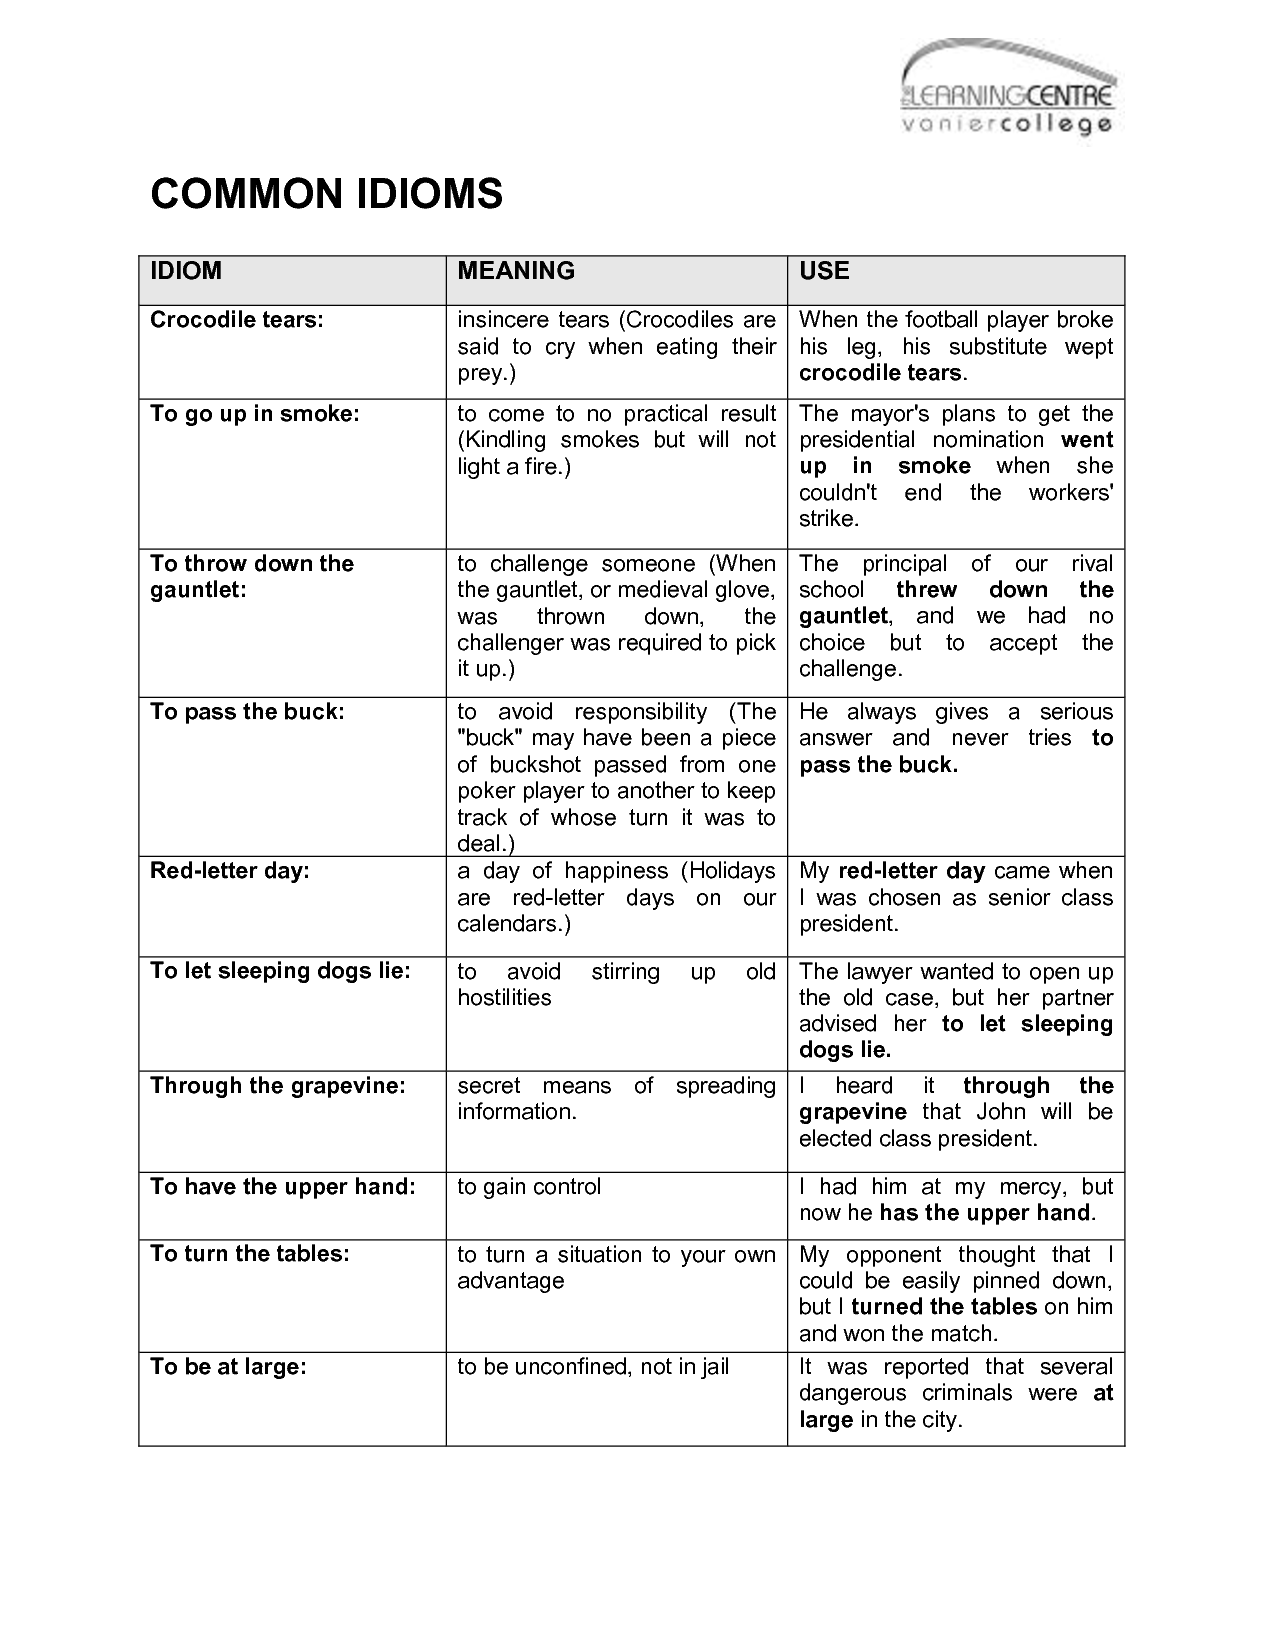 List Of Common Idioms